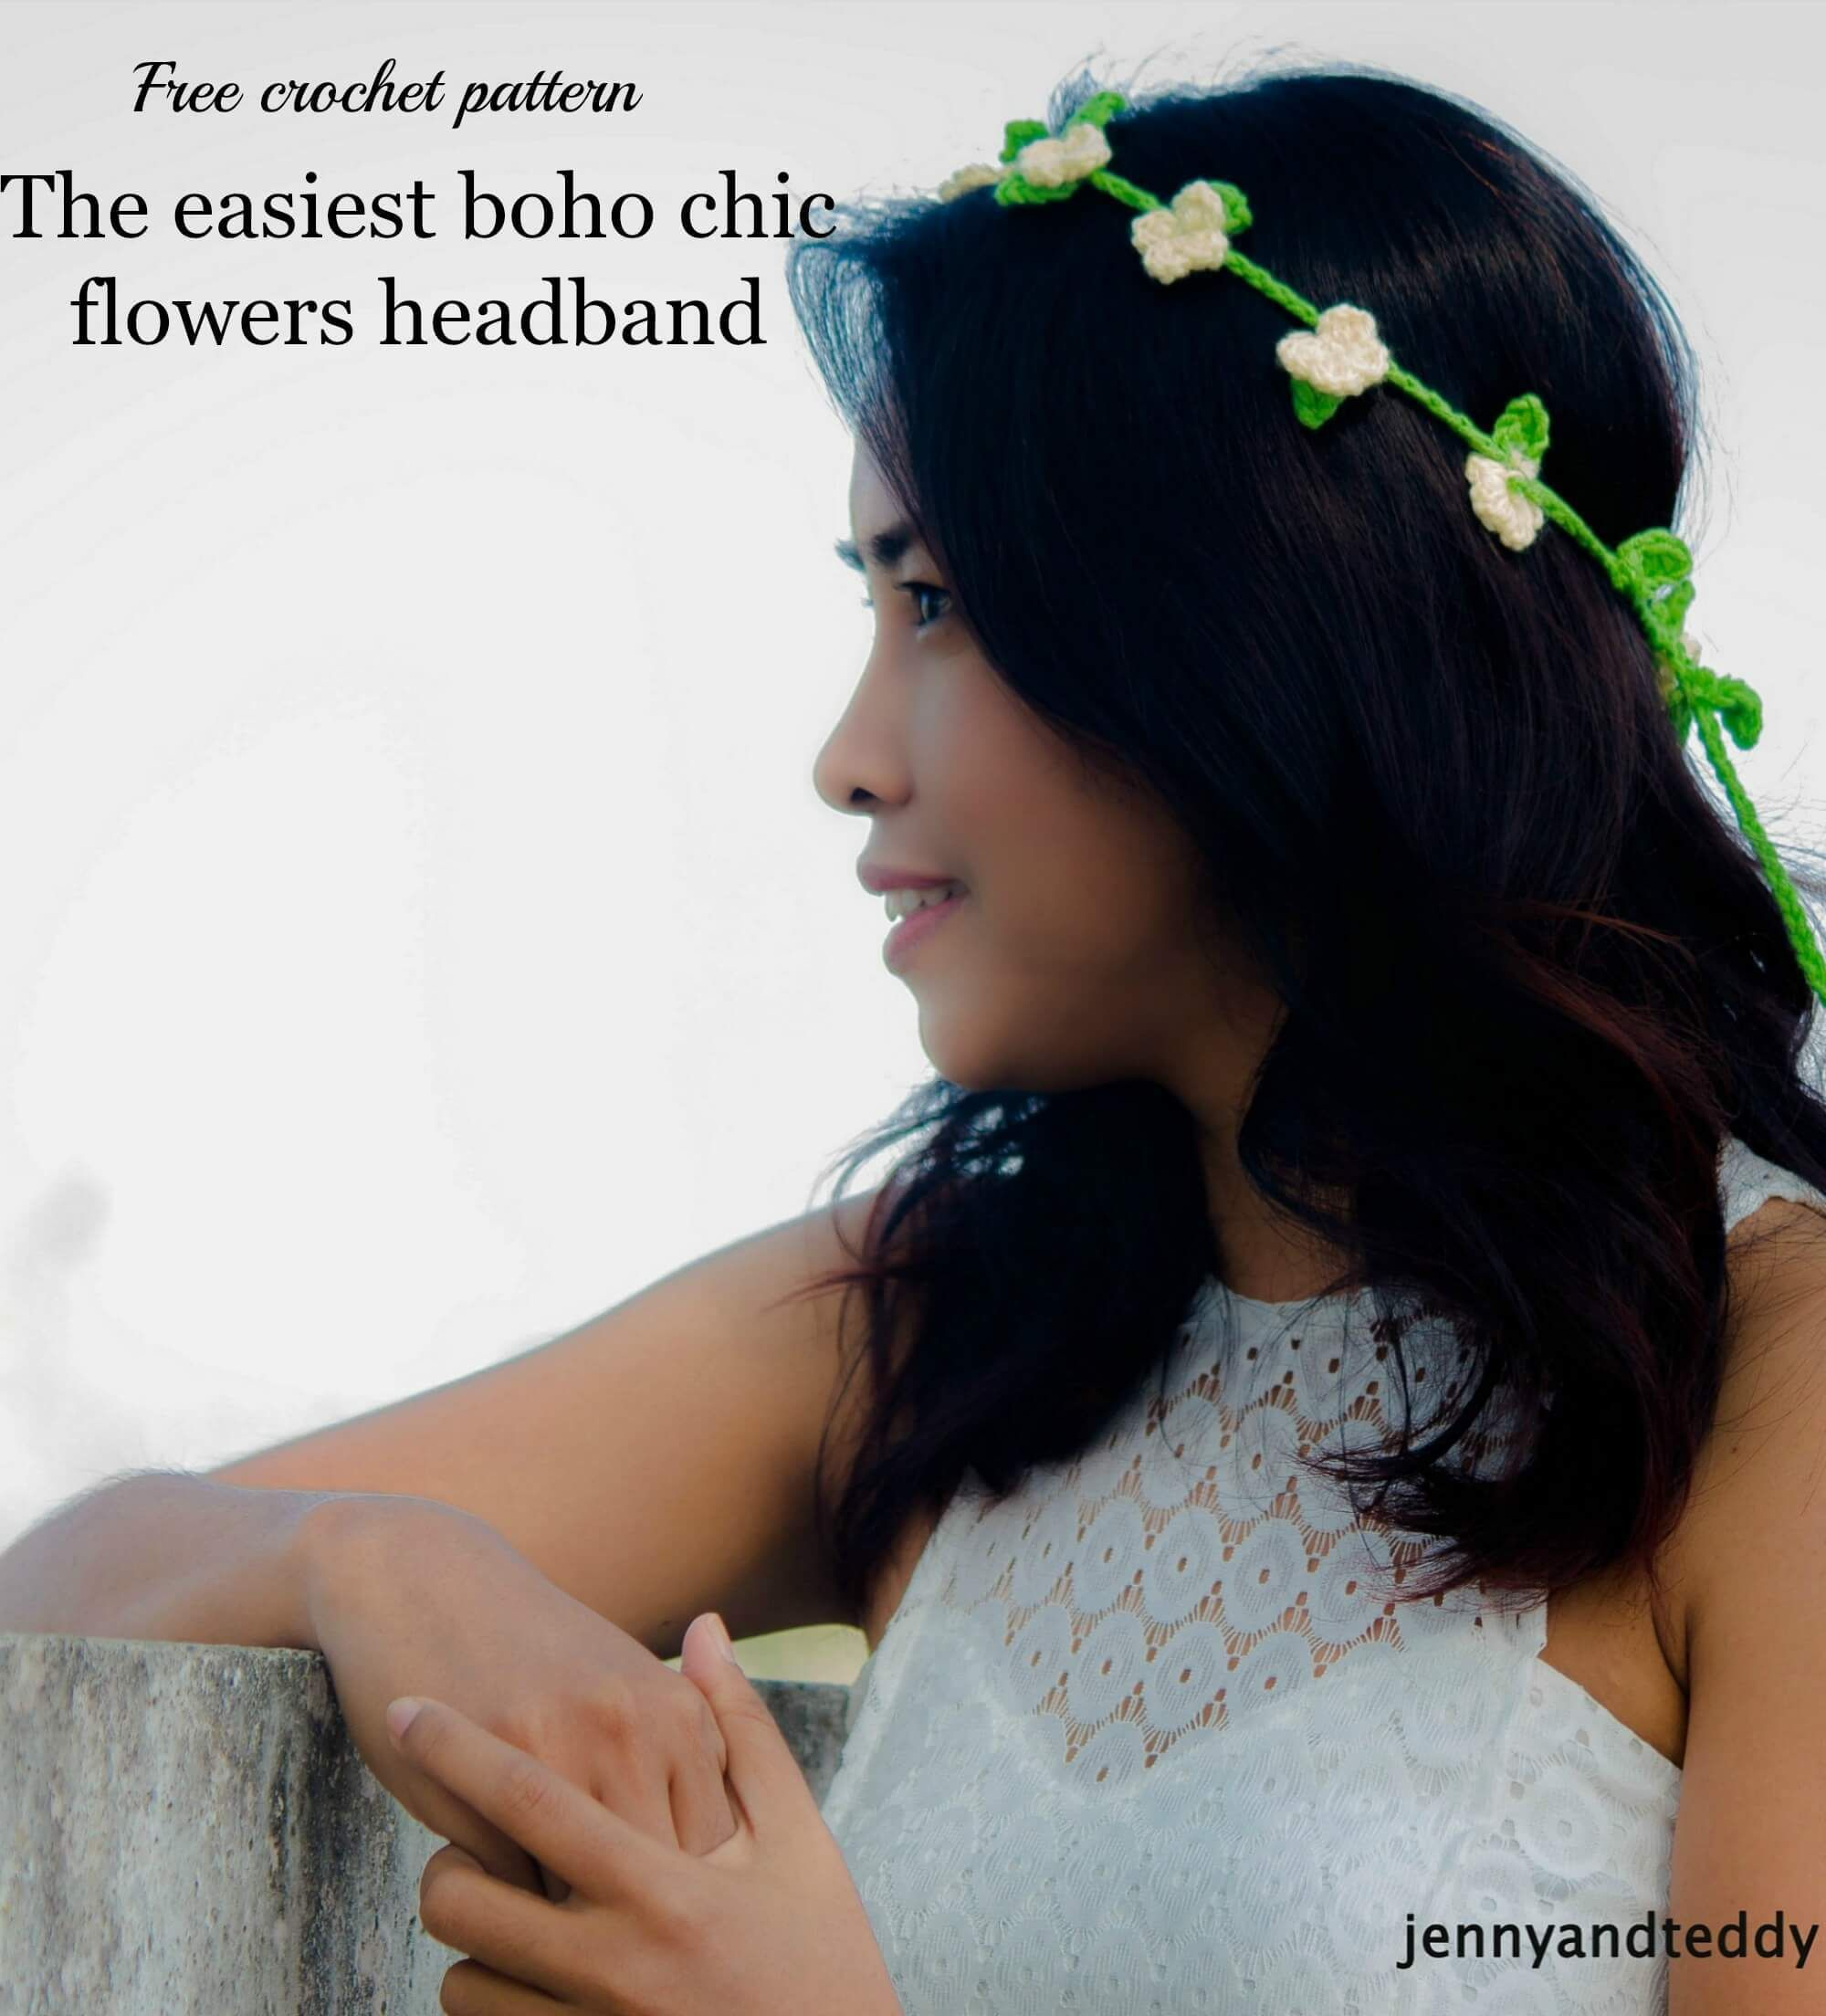 free crochet pattern the easiest boho chic flowers headband ...